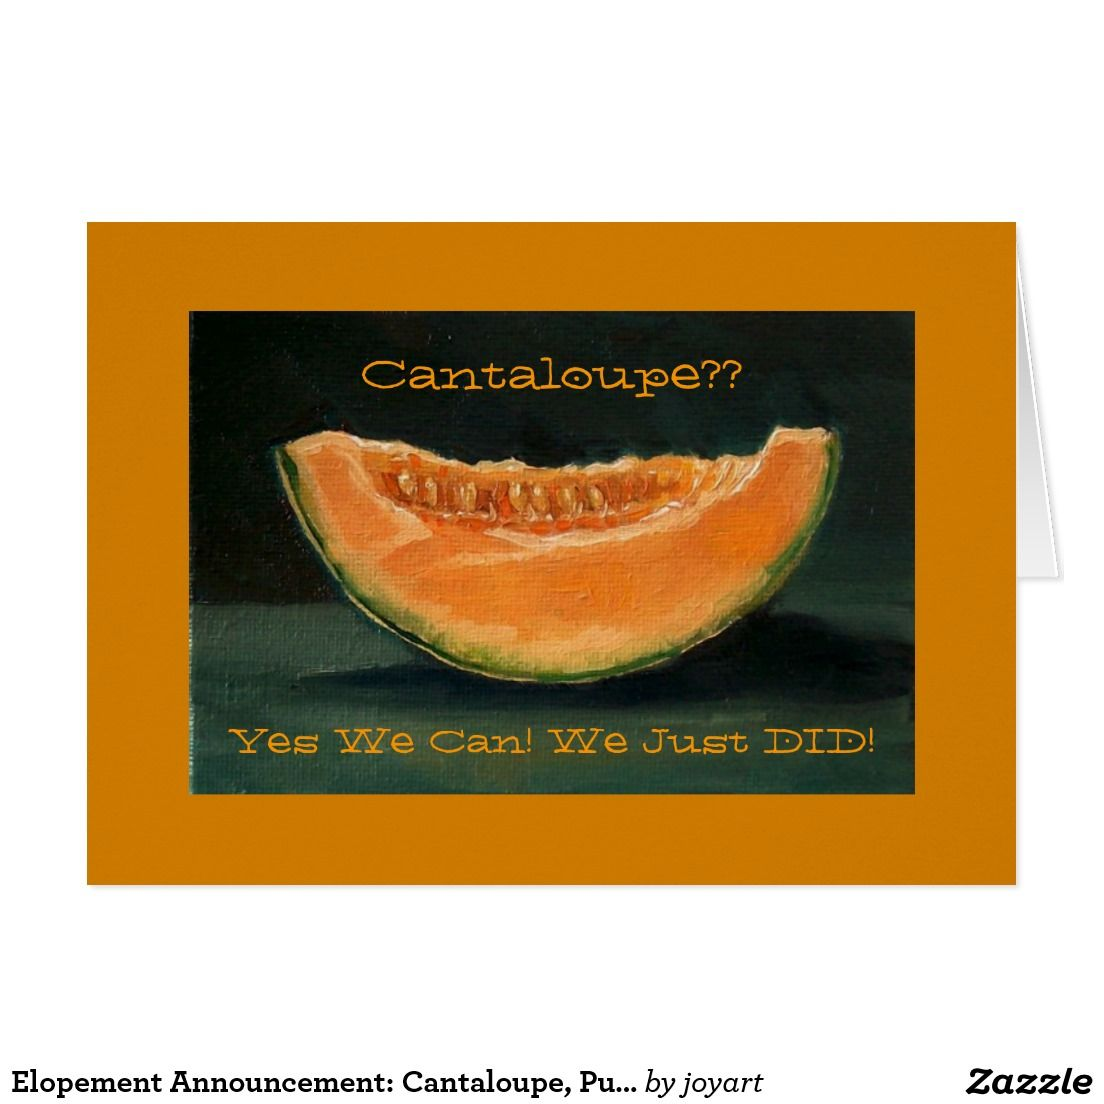 Elopement Announcement Cantaloupe Pun Funny Announcement Zazzle Com Elopement Announcement Marriage Announcement Elopement Cantaloupes are also commonly known as muskmelons, mush melons, rock melons and persian. elopement announcement cantaloupe pun